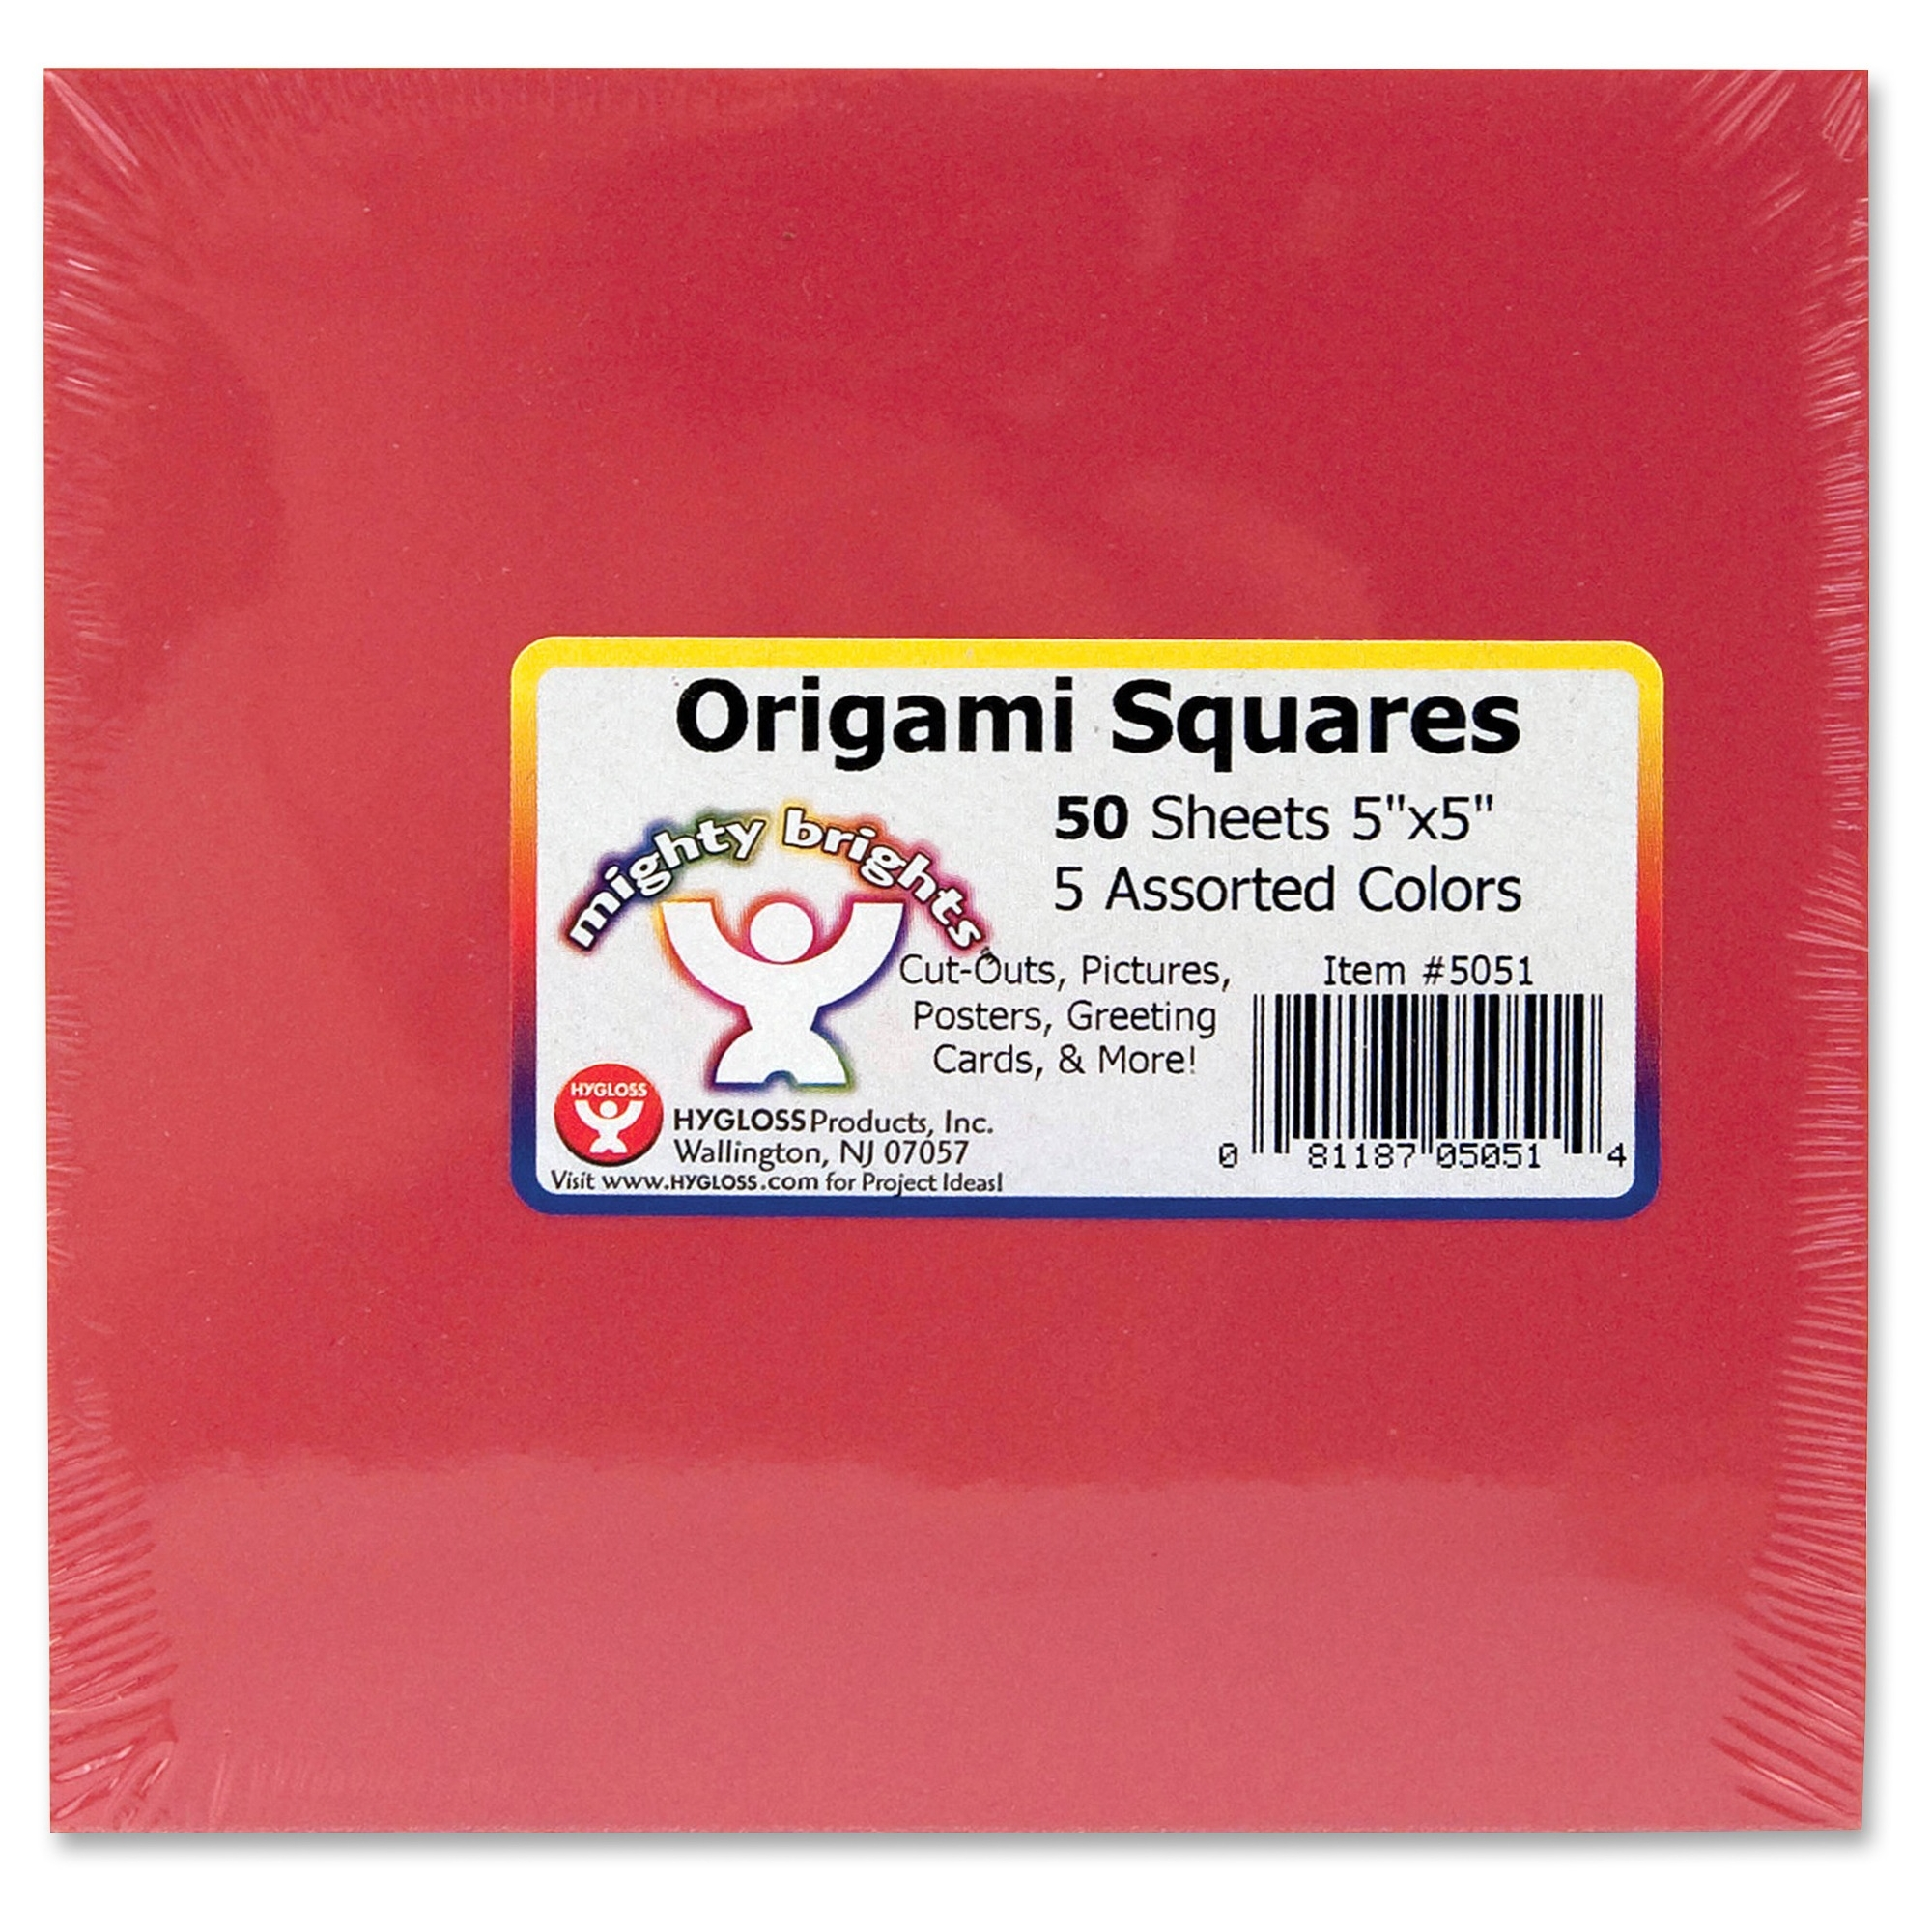 "Hygloss Mighty Brights Origami Squares 50 Piece[s] 5"" X 5"" 1 Pack Assorted (hyx-5051) by Hygloss Products"